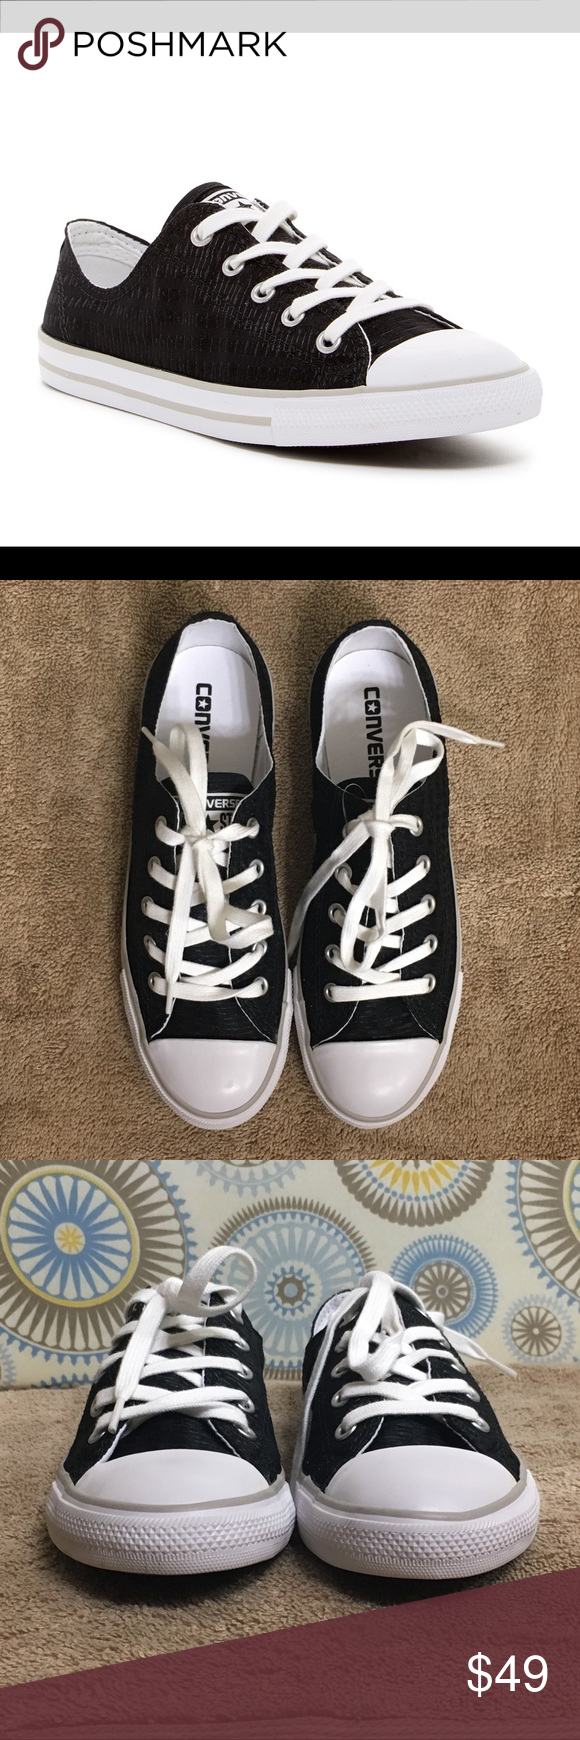 c9dab4bc8dd800 Converse CTAS Daitly Low Top Sneaker These are brand new Converse Chuck  Taylor All Star Dainty